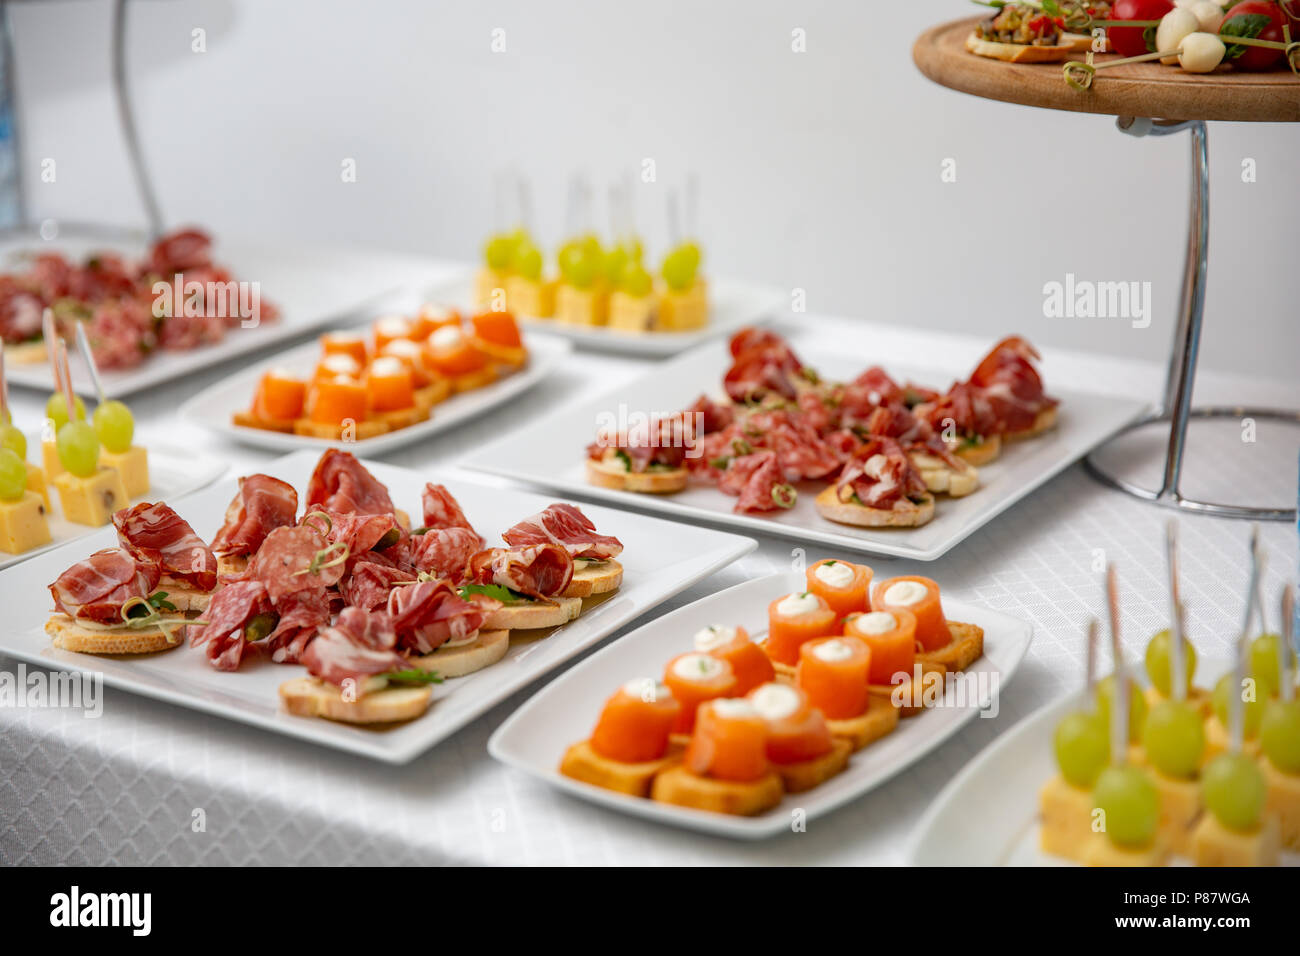 Canapes Hochzeit Salami Canapes Stockfotos And Salami Canapes Bilder Seite